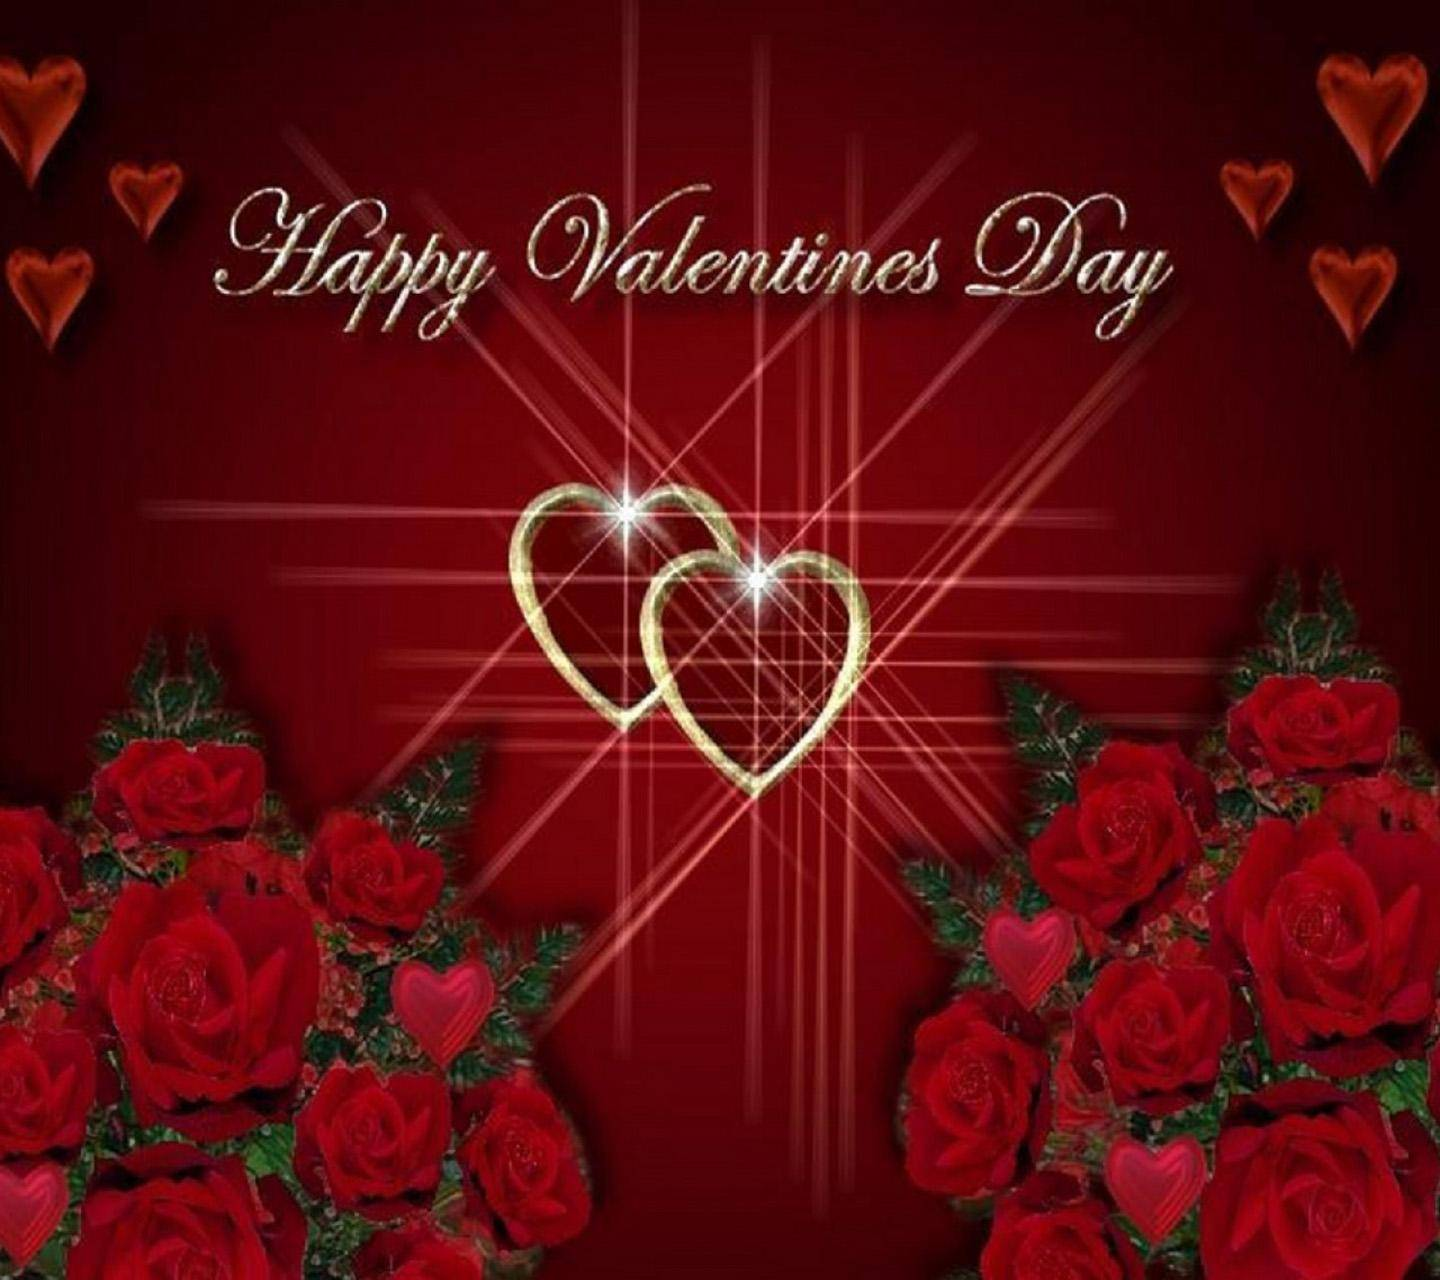 Happy Valentine Day Wallpaper by _Savanna_ - a4